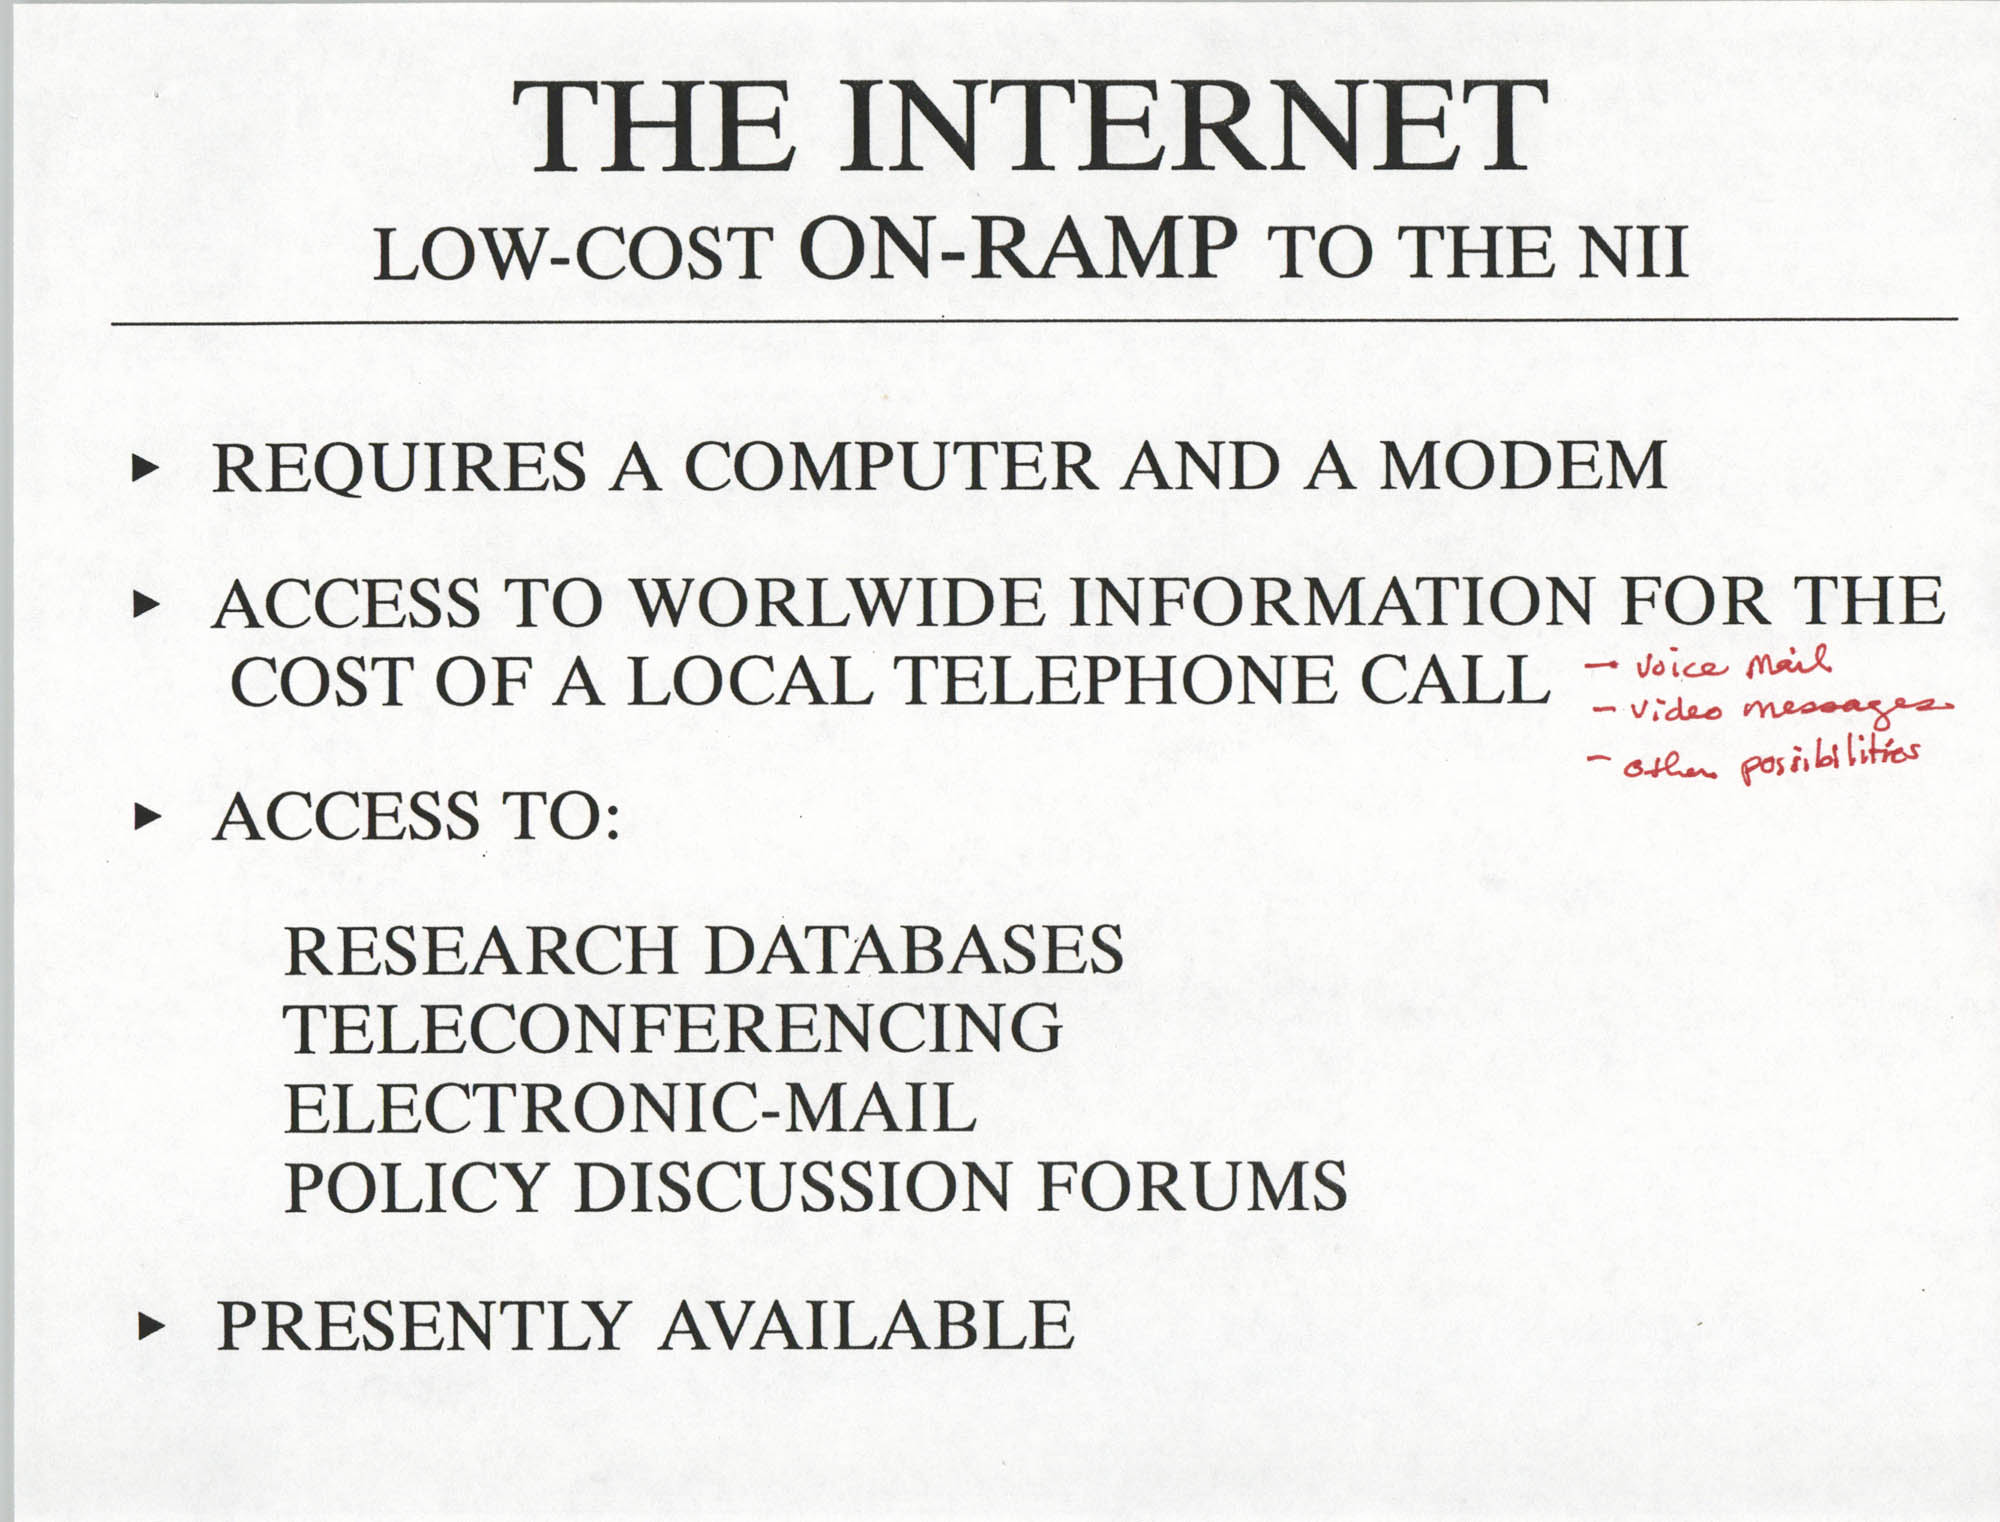 Developing an Agenda for the Information Superhighway, Anthony L. Pharr, May 20, 1994, Page 9